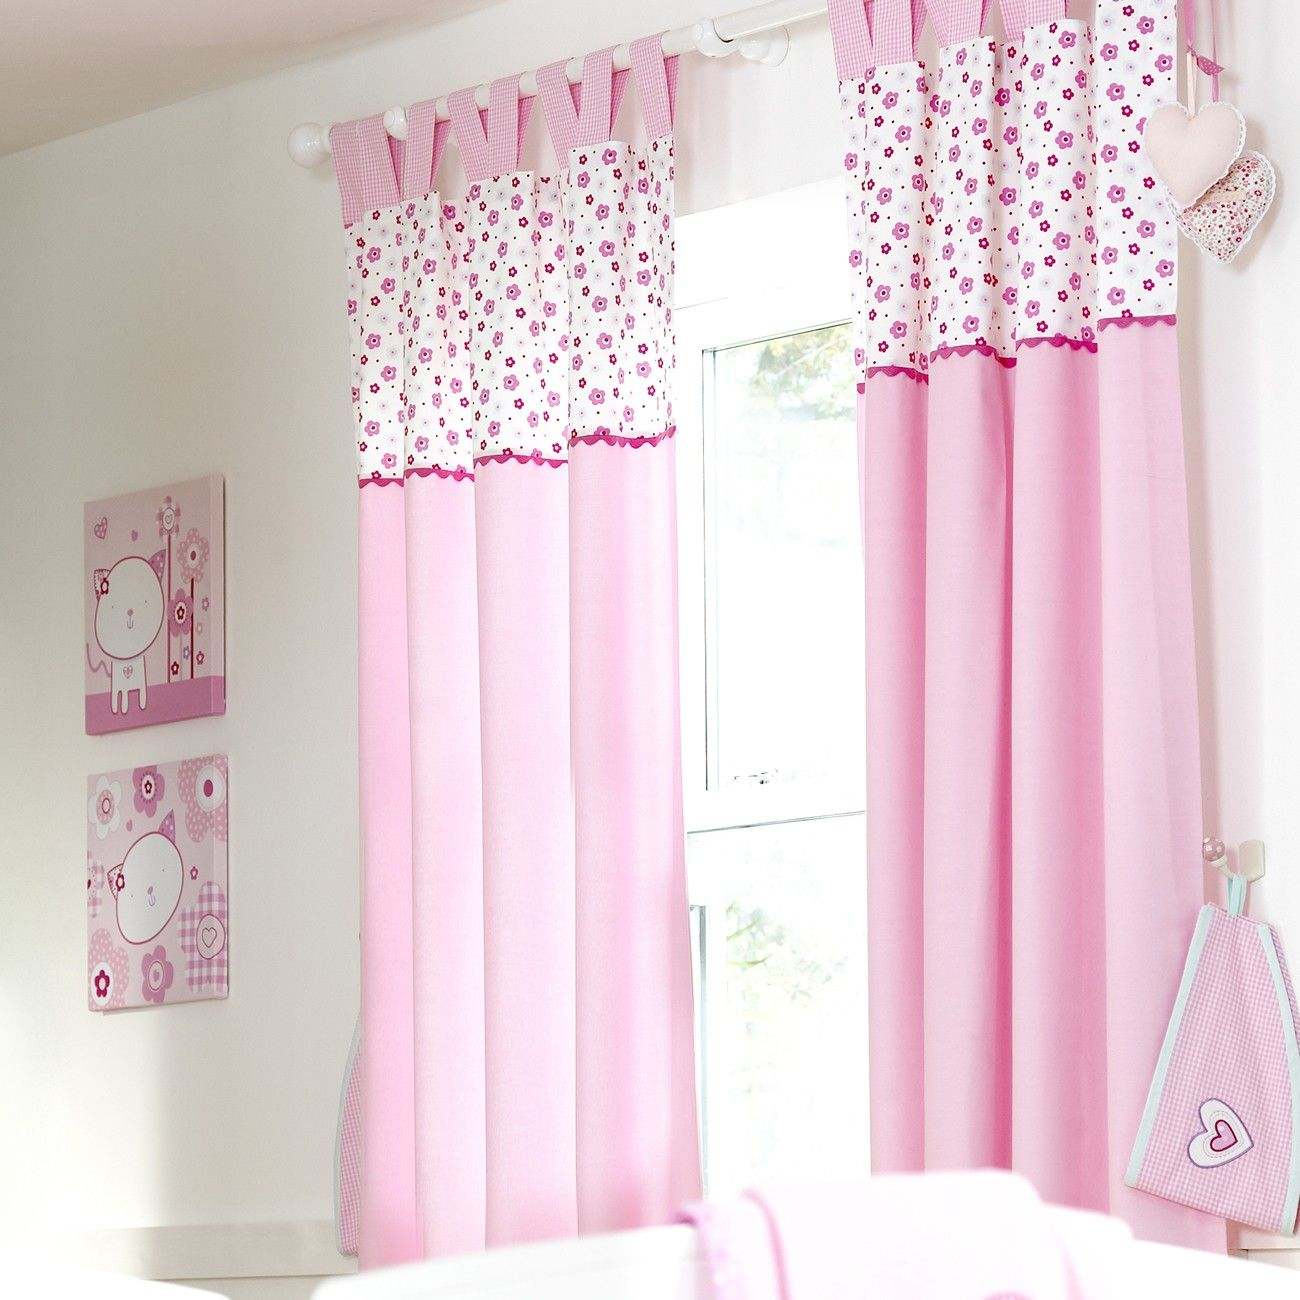 Baby room curtain styles -